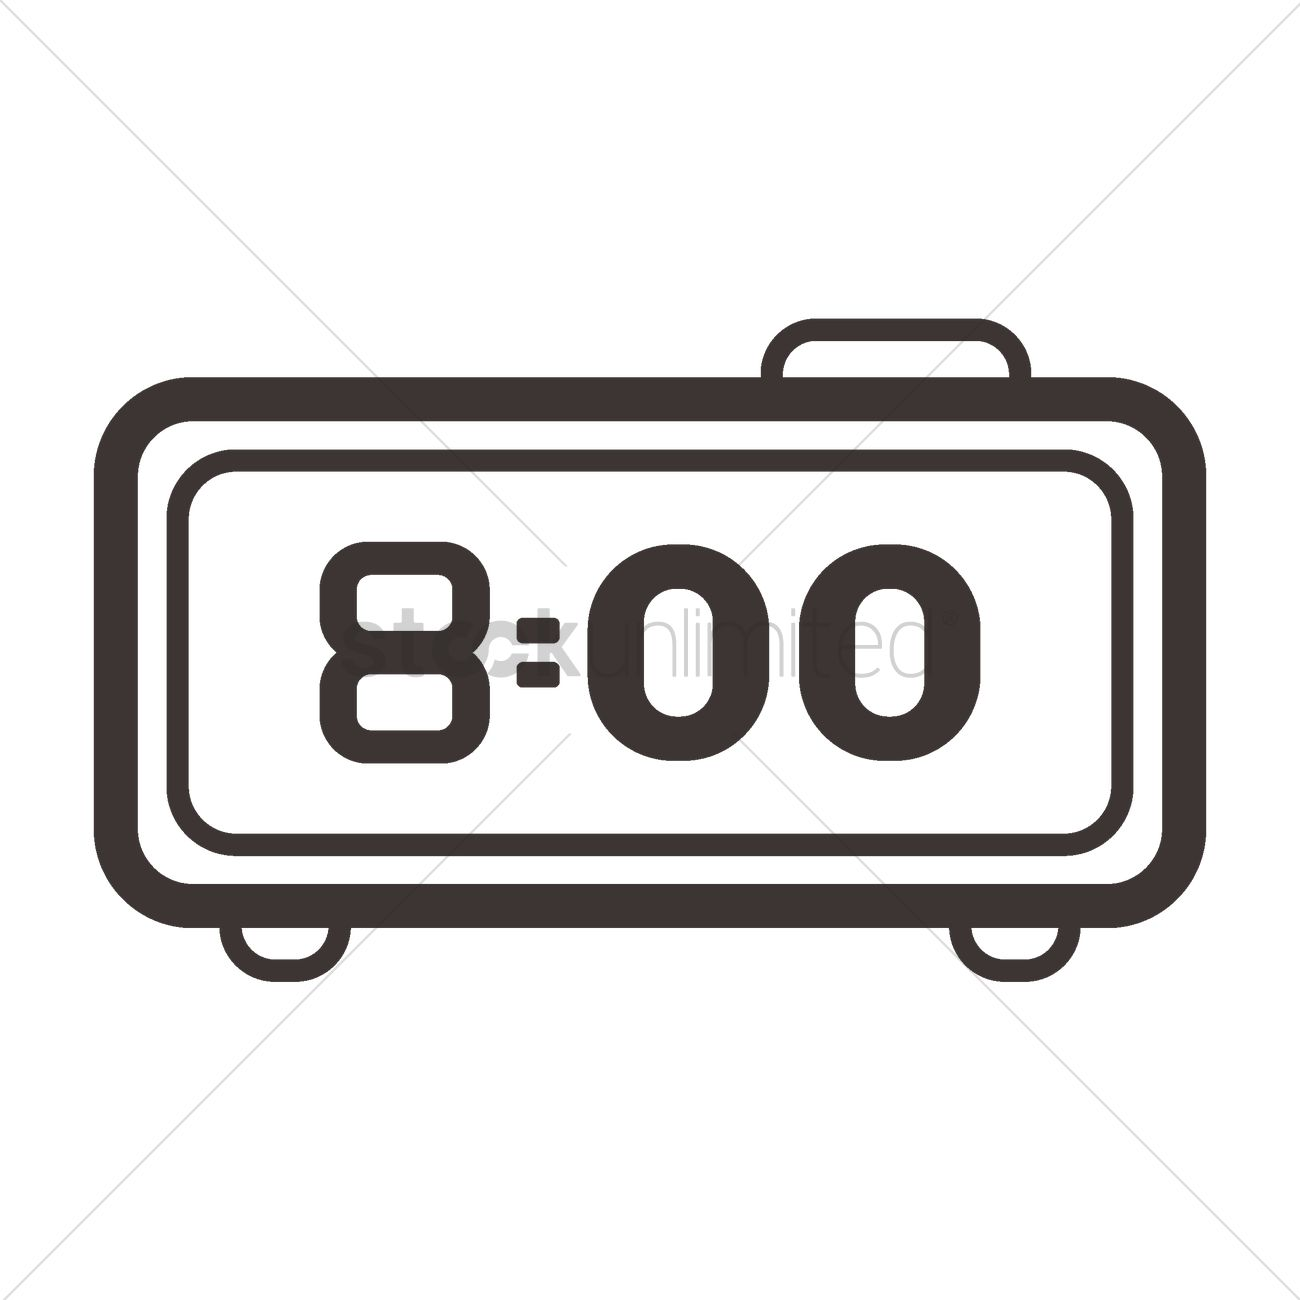 digital alarm clock vector image 2006772 stockunlimited rh stockunlimited com